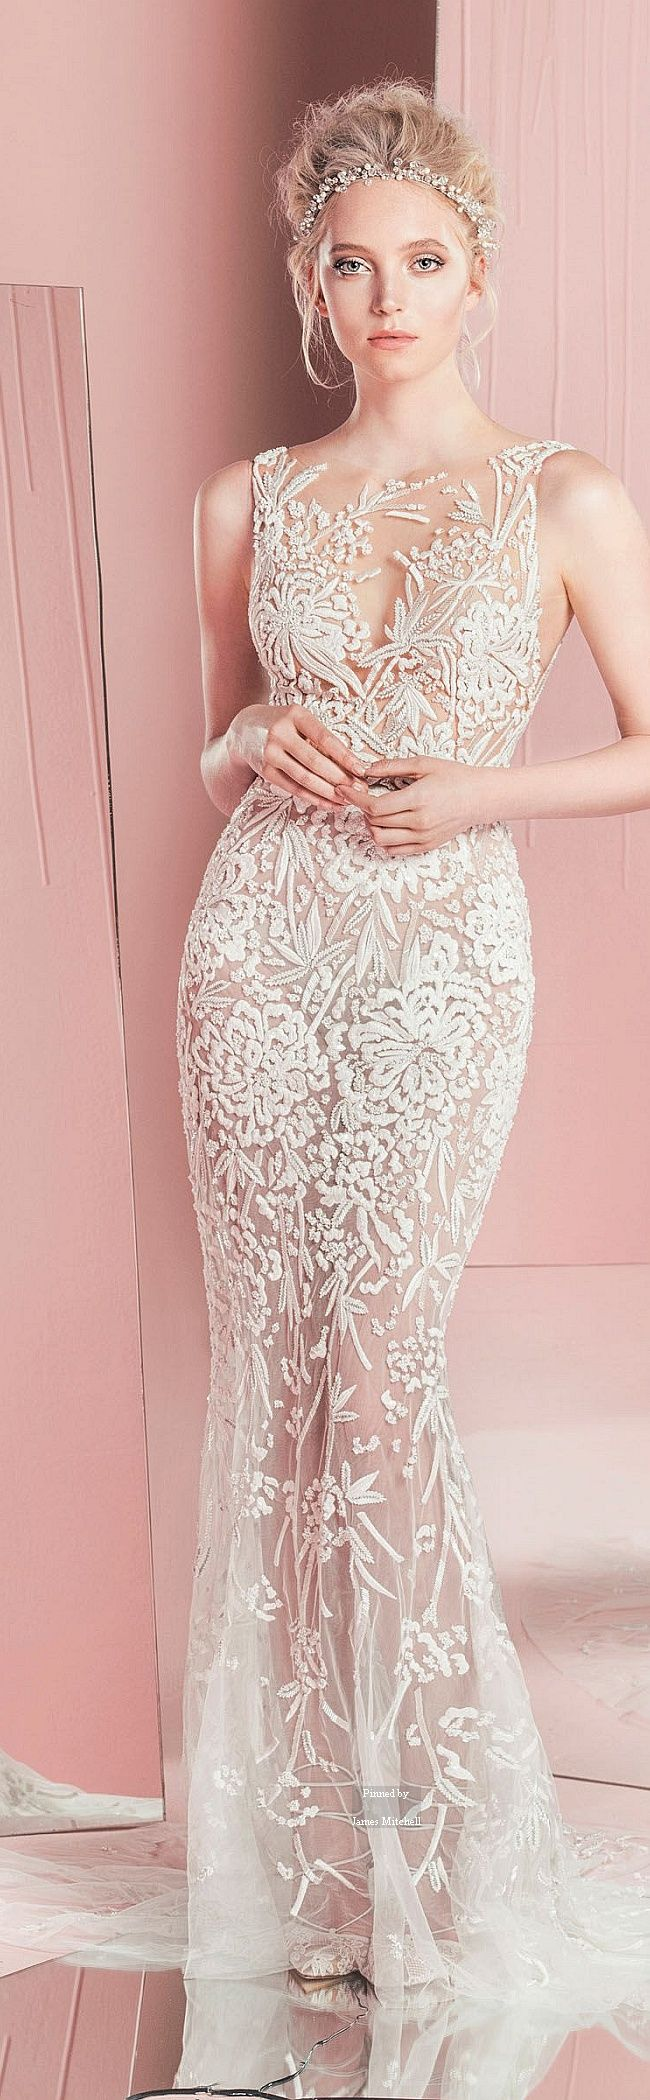 Zuhair Murad Bridal Spring-summer 2016 | sewing | Pinterest | Novios ...